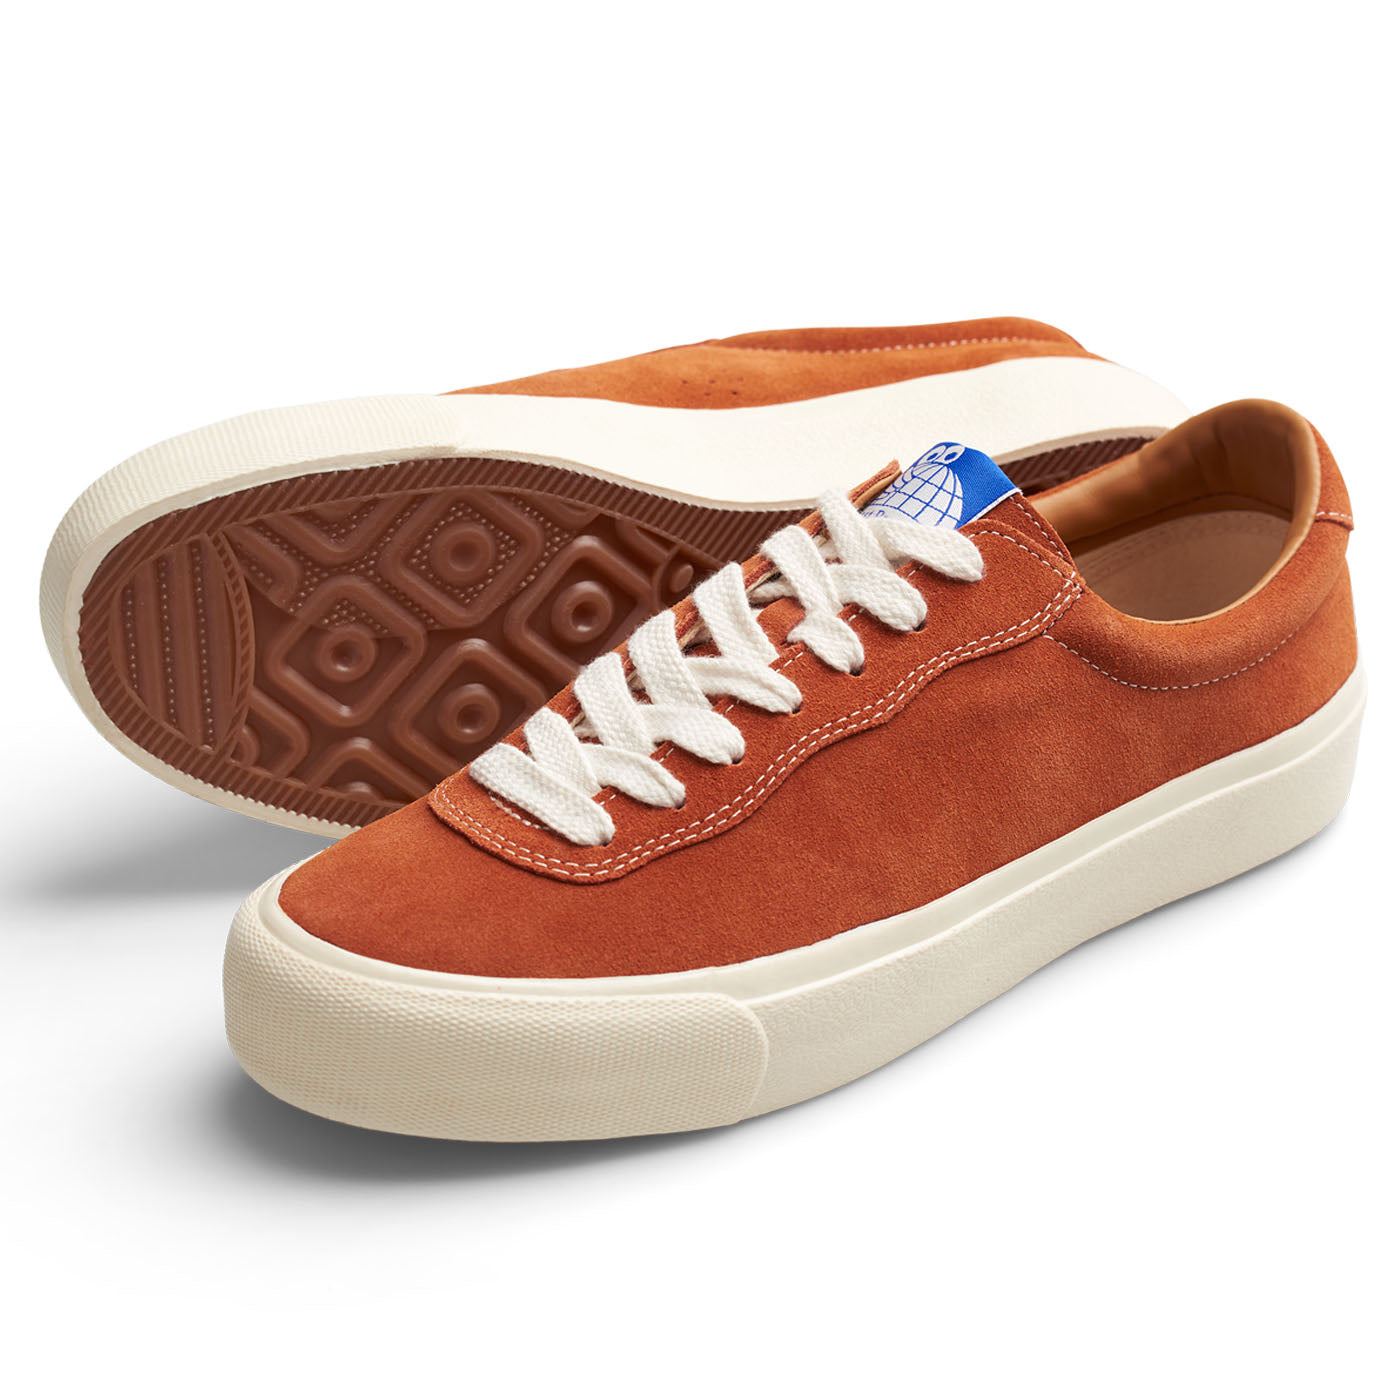 "Last Resort AB - VM001 Suede Lo - ""Orange / White"""